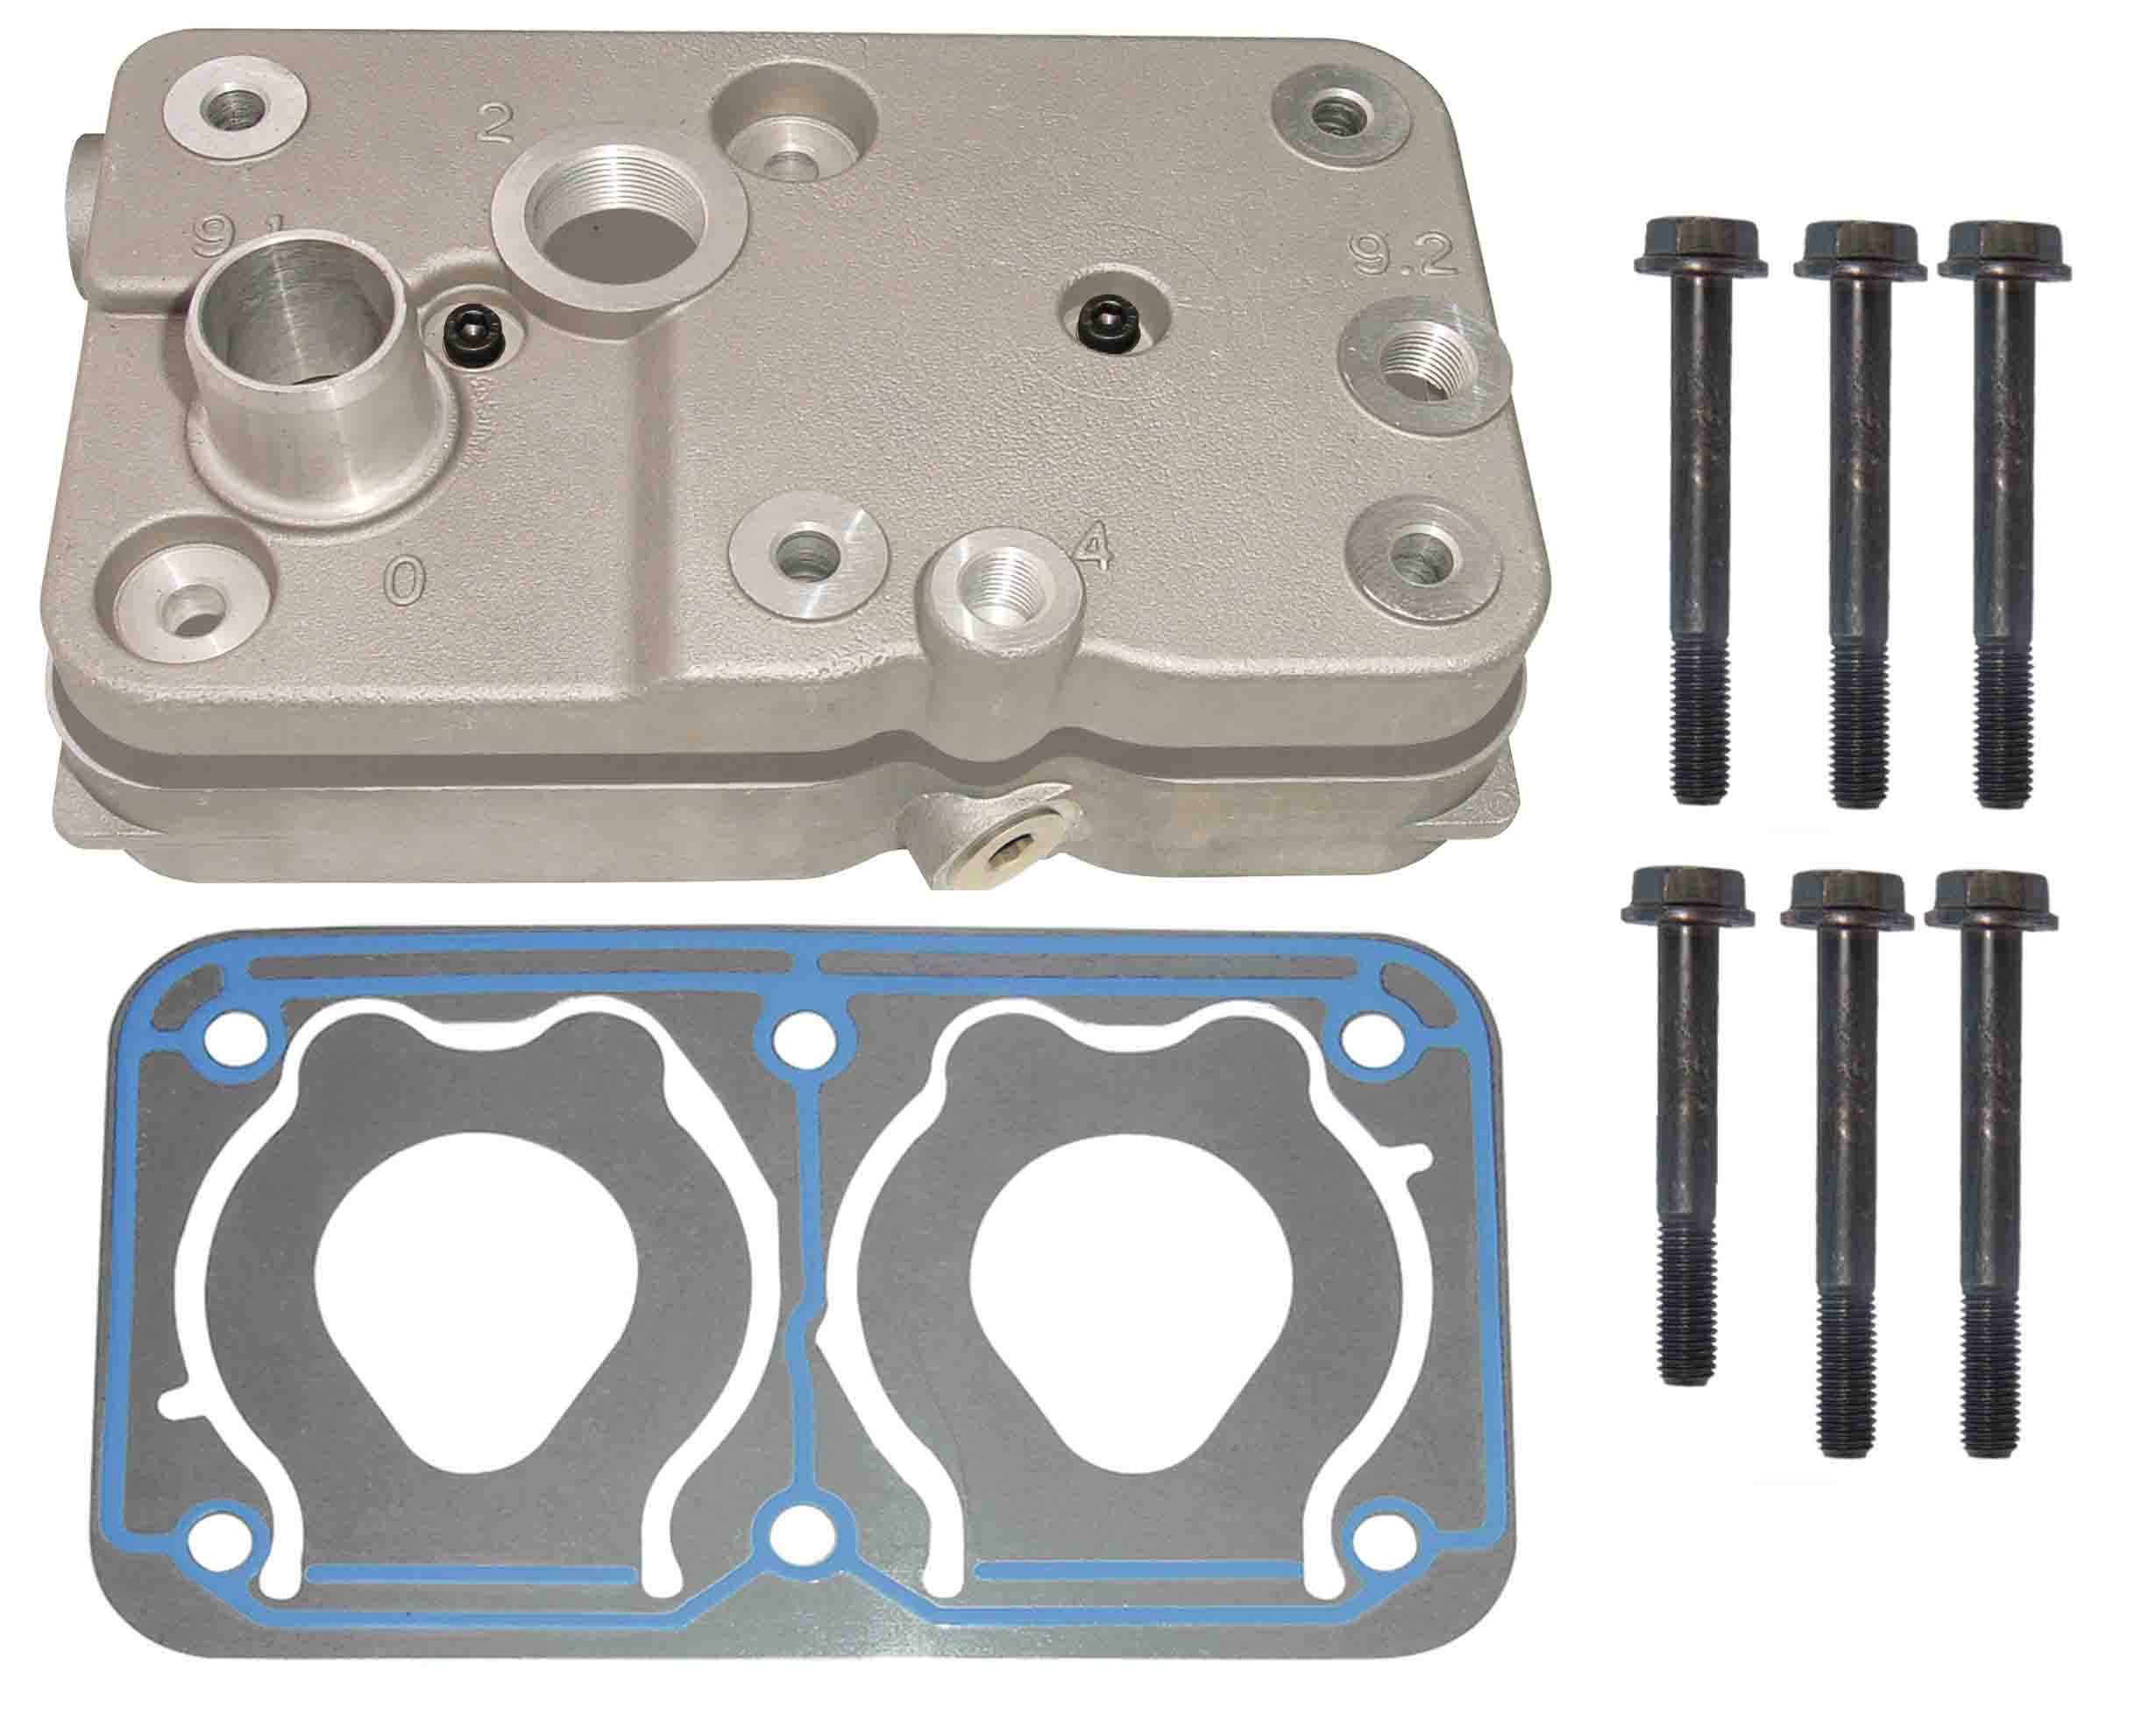 MERCEDES CYLINDER HEAD WIHT PLATE KIT ARC-EXP.304697 0011315619